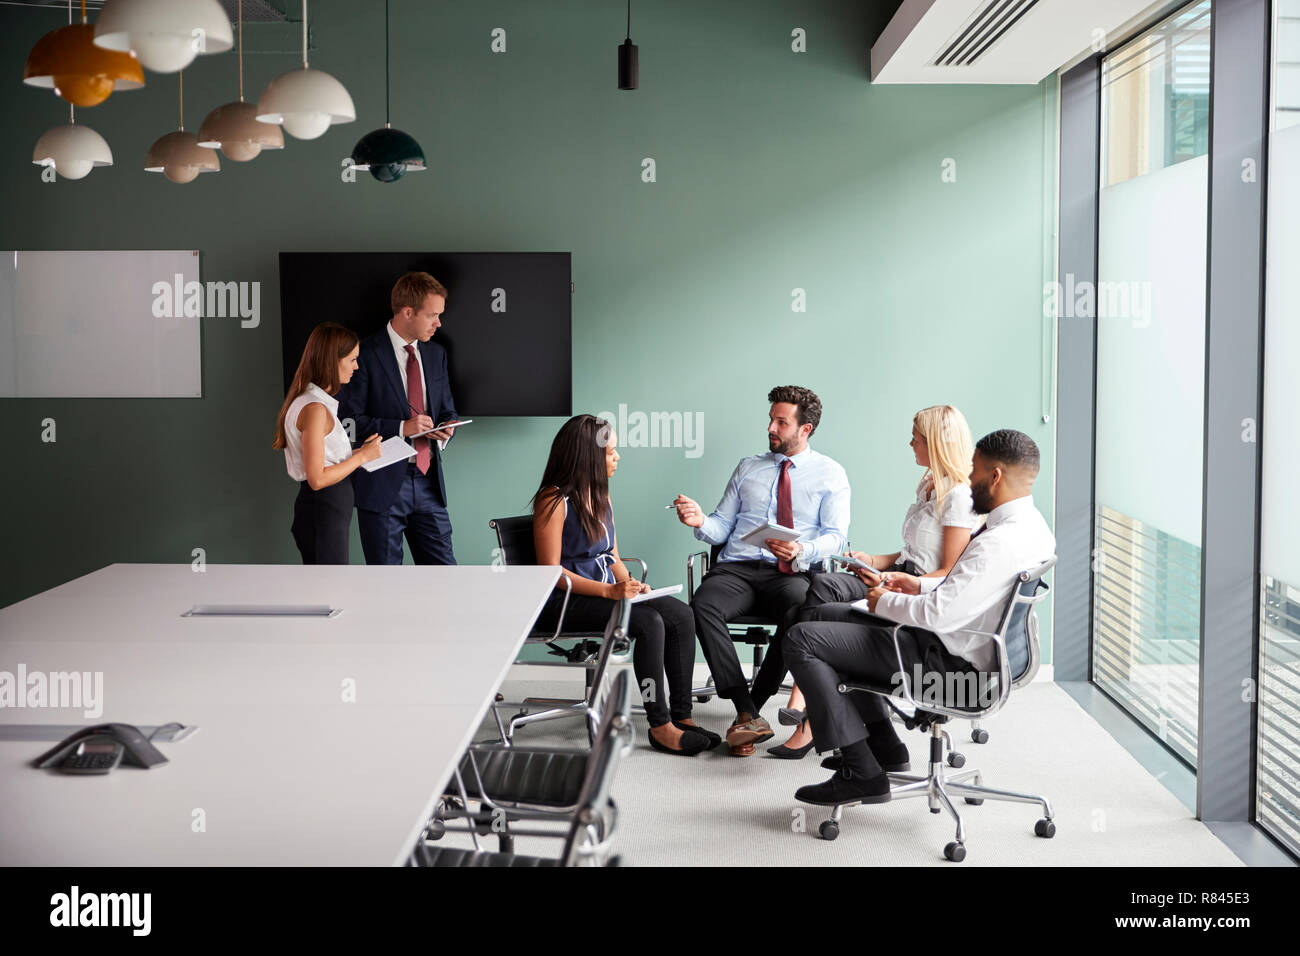 Group Having Discussion At Graduate Recruitment Assessment Day Whilst Being Observed By Recruitment Team - Stock Image